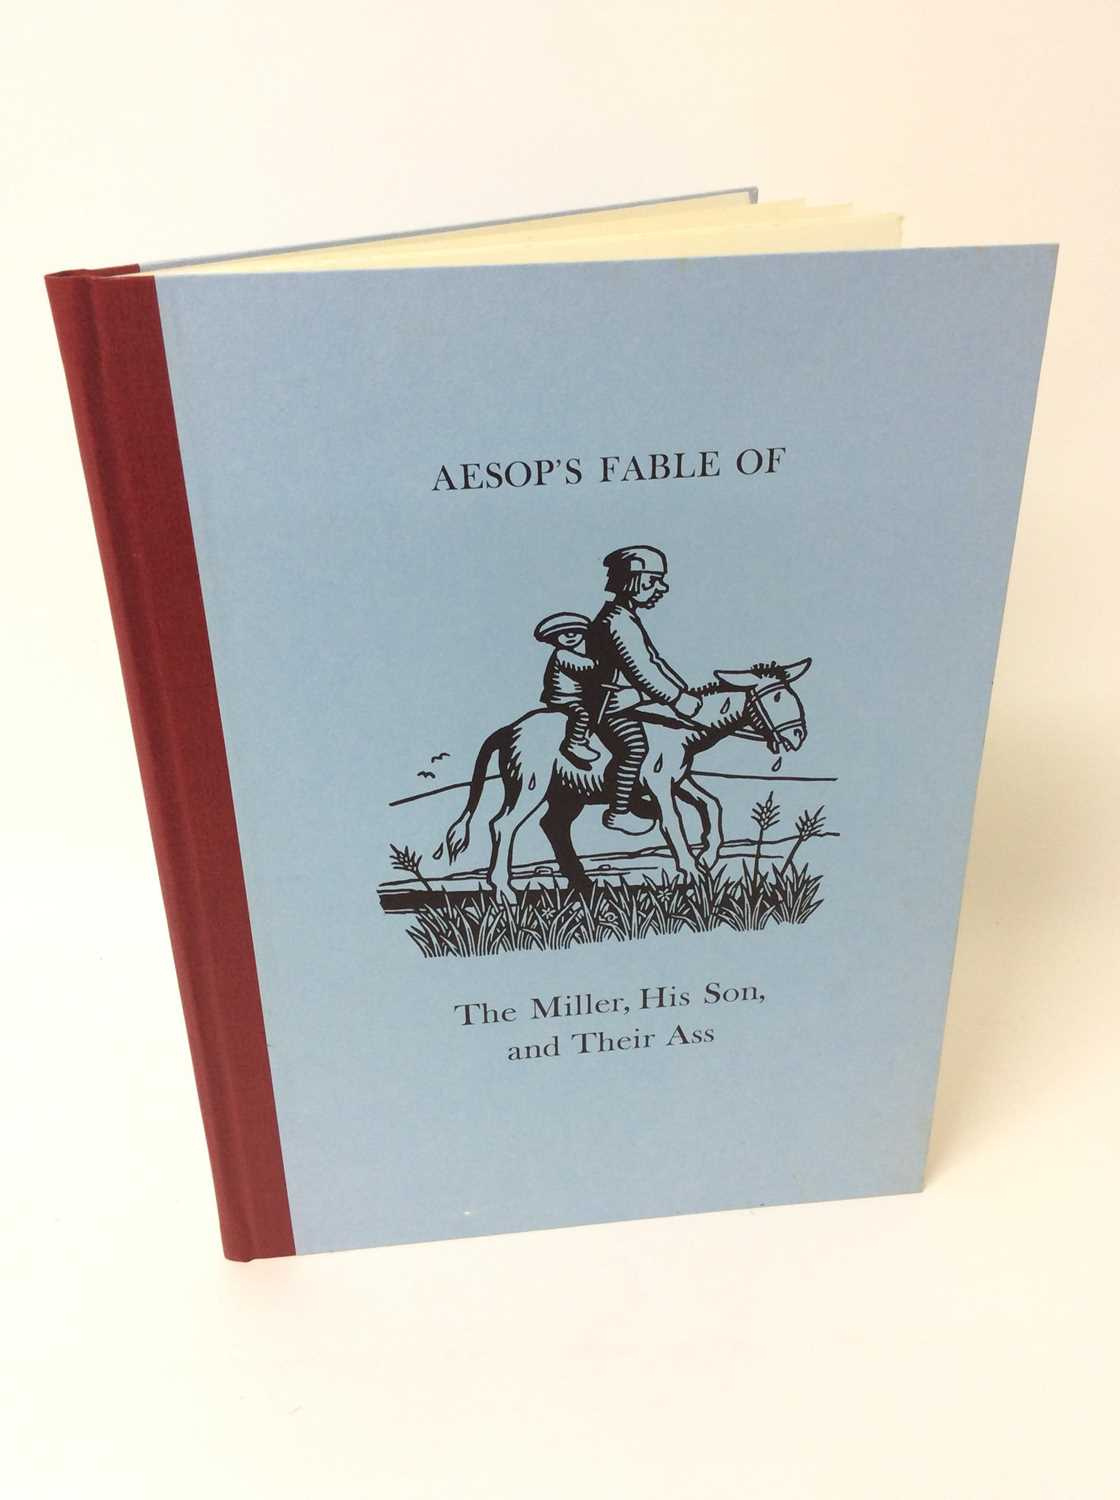 Lot 87 - Aesop's Fable - The Miller, his Son and their Ass, Incline Press, 2006